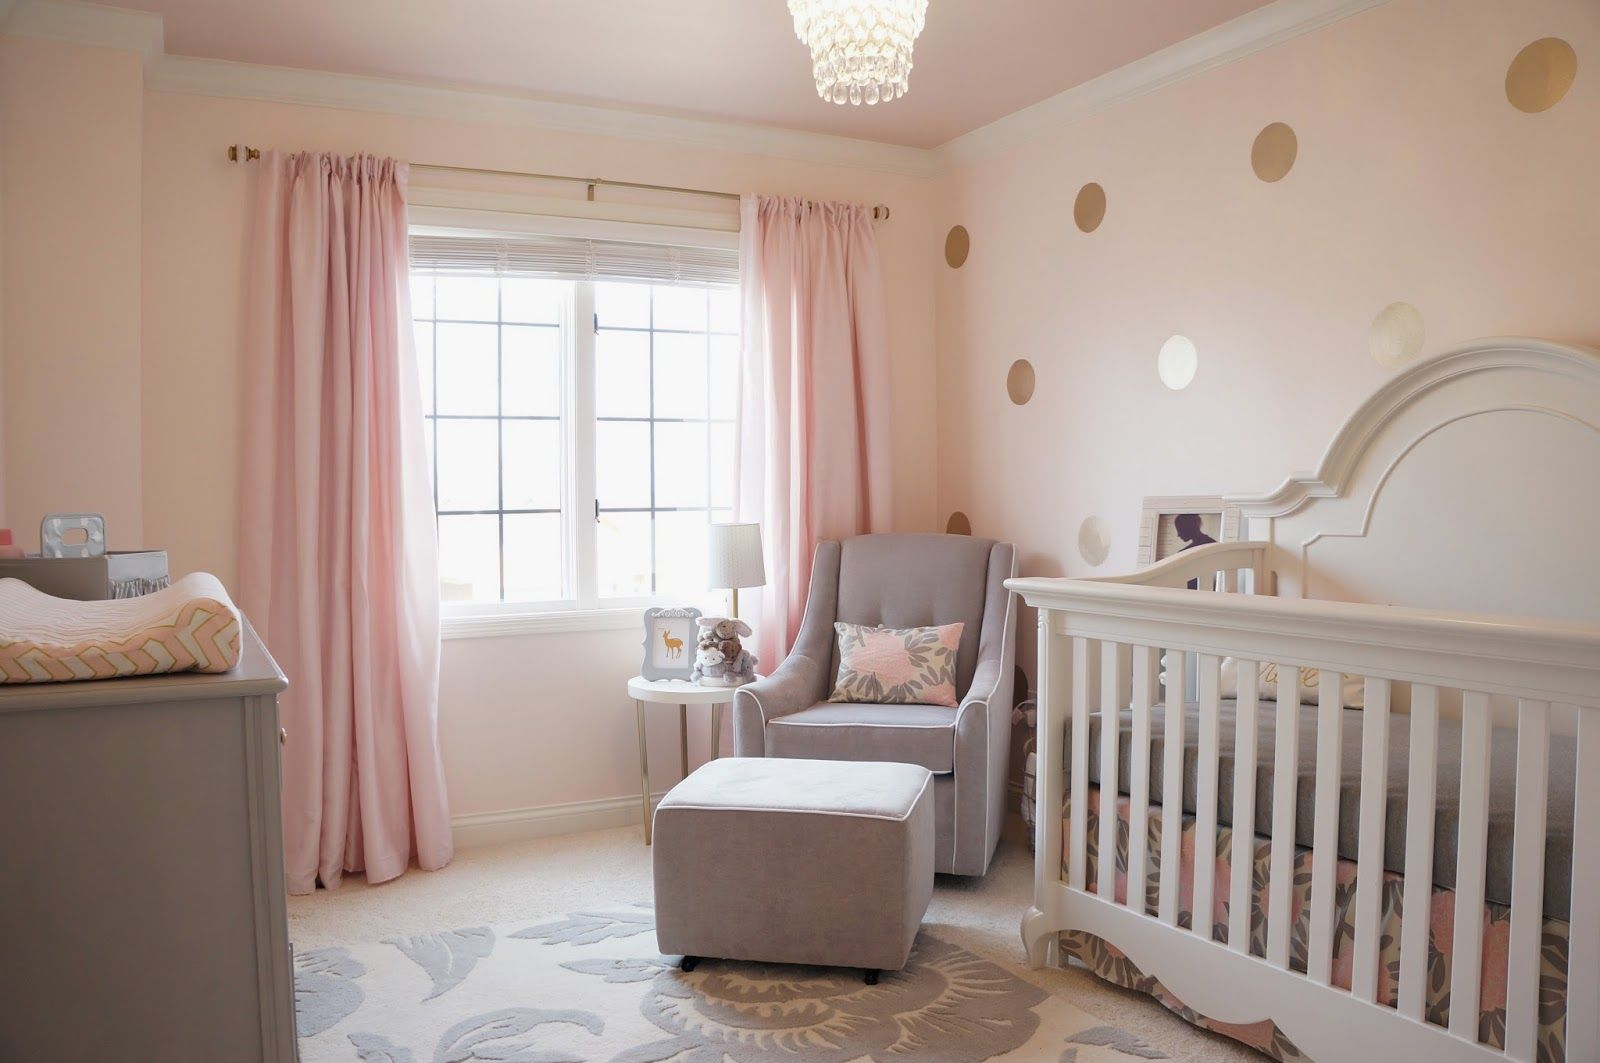 It S A Pretty Prins Life Nursery Reveal Gold Baby Room Baby Girl Room Pink And Gray Nursery